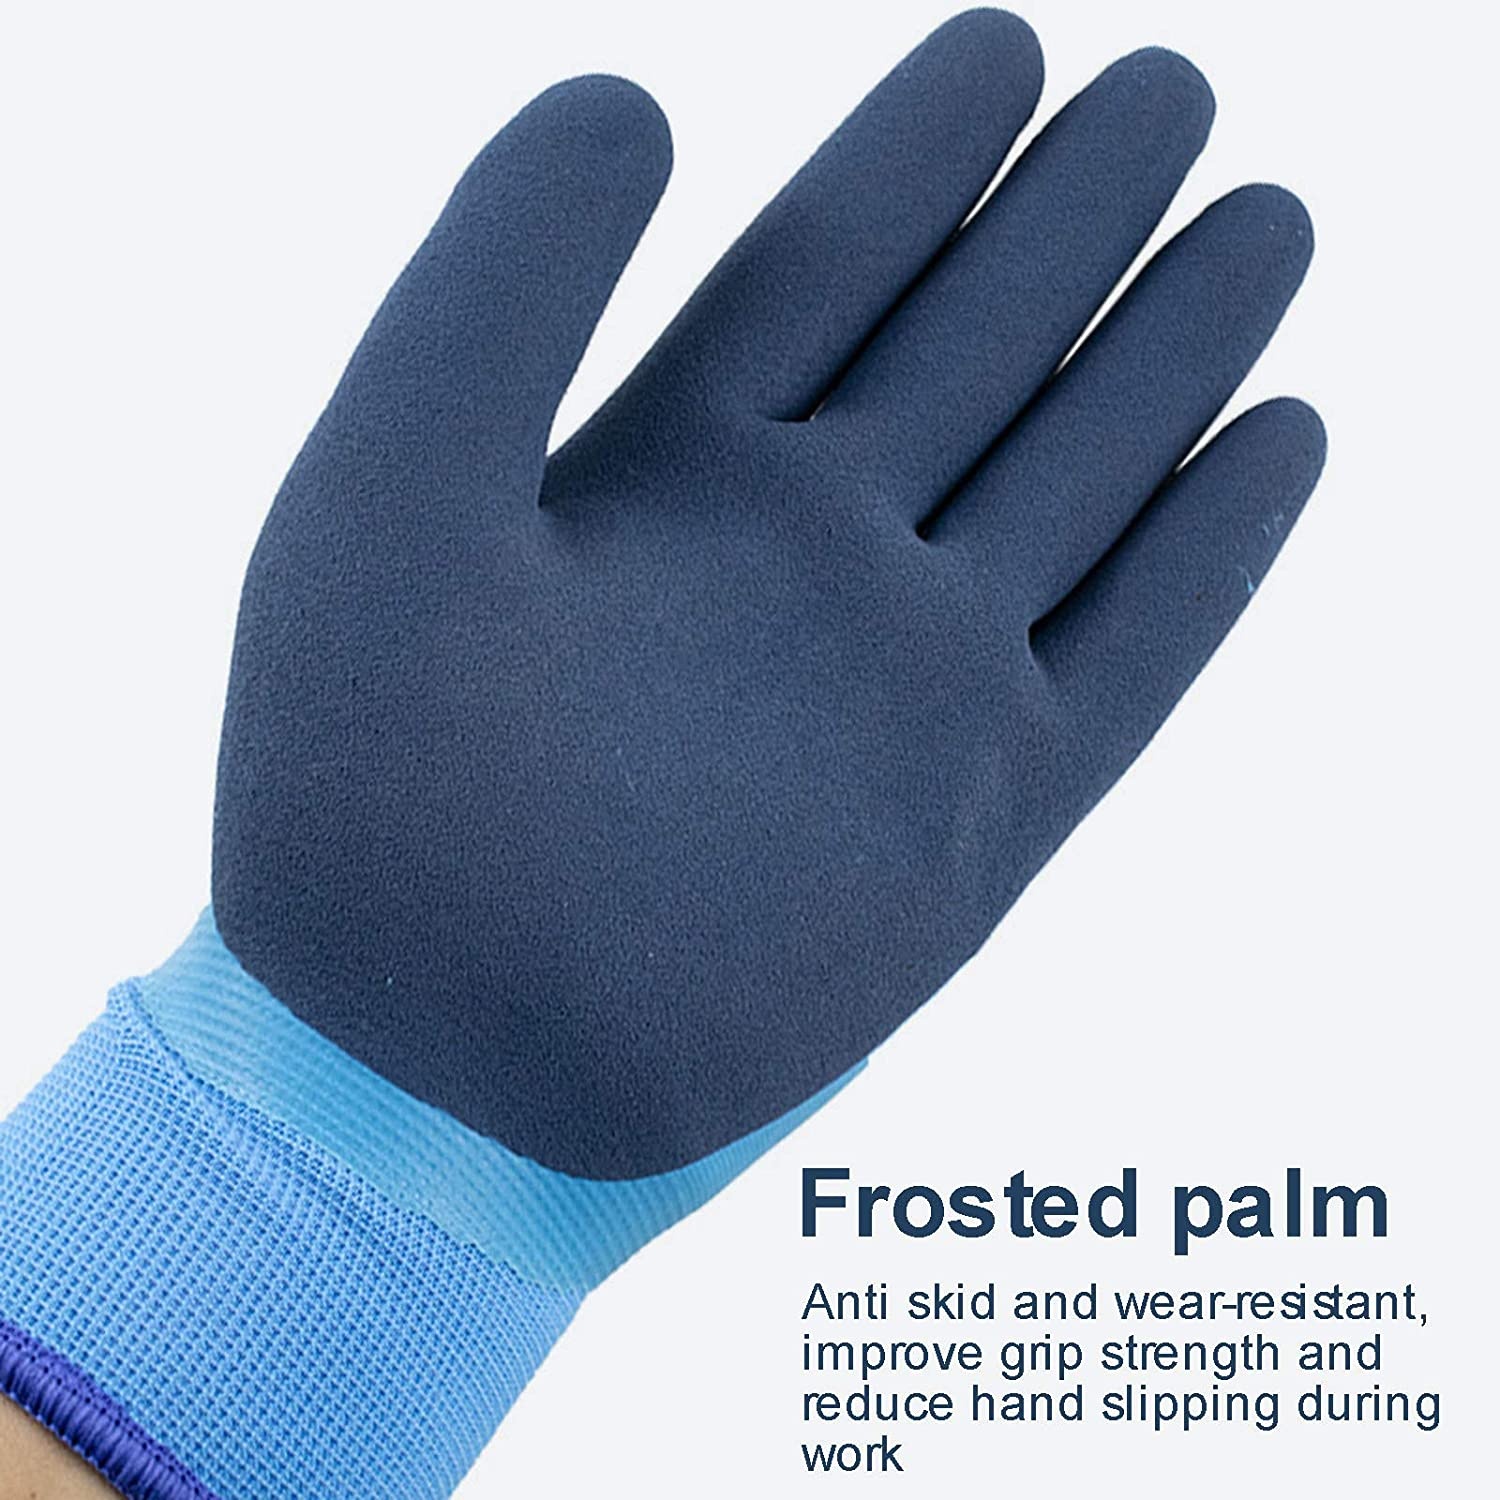 Work Gloves for Men Cold Weather with Grip, Waterproof, Winter Warm, Outdoor Multi-Purpose